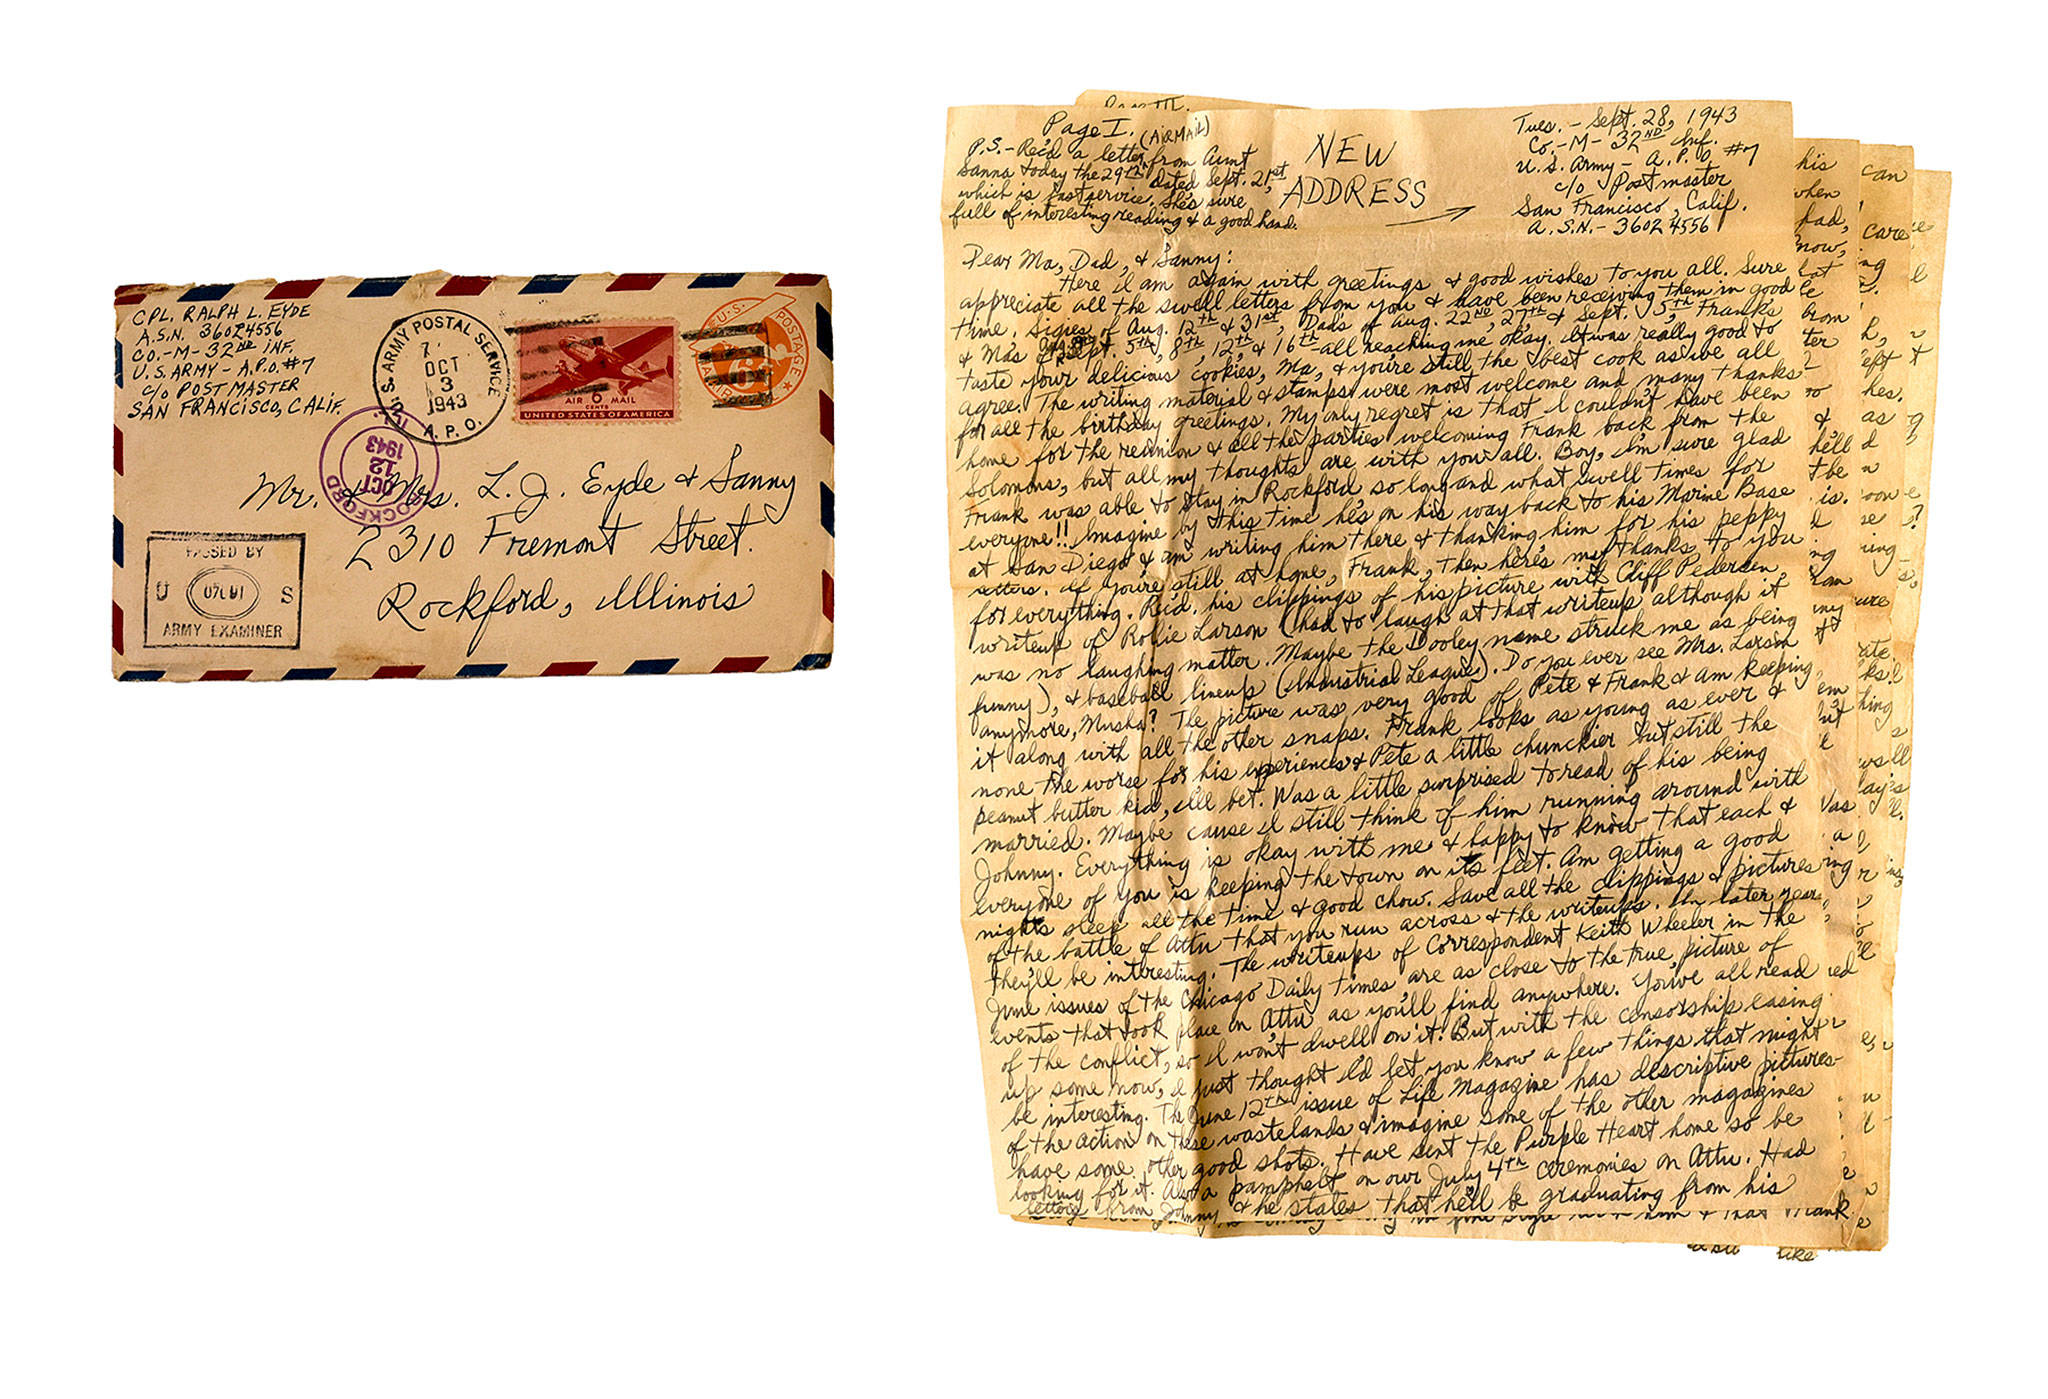 One of the hundreds of letters written during and after World War II, mostly by the members of a single family — the Eydes of Rockford, Illinois. (Bill O'Leary / Washington Post)